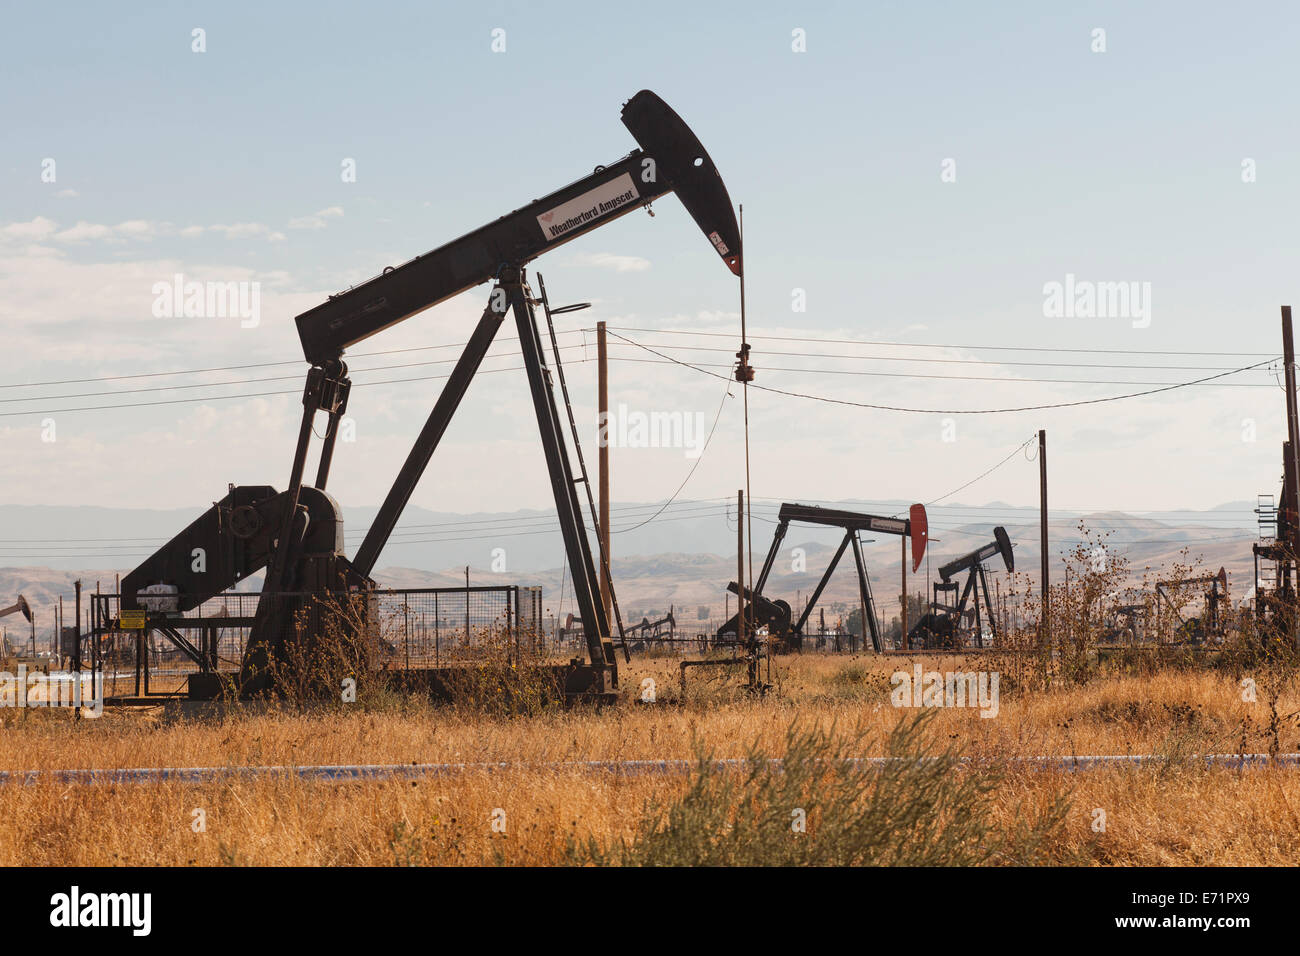 Oil pumpjacks - Kern River Oil Field, Coalinga, California USA - Stock Image